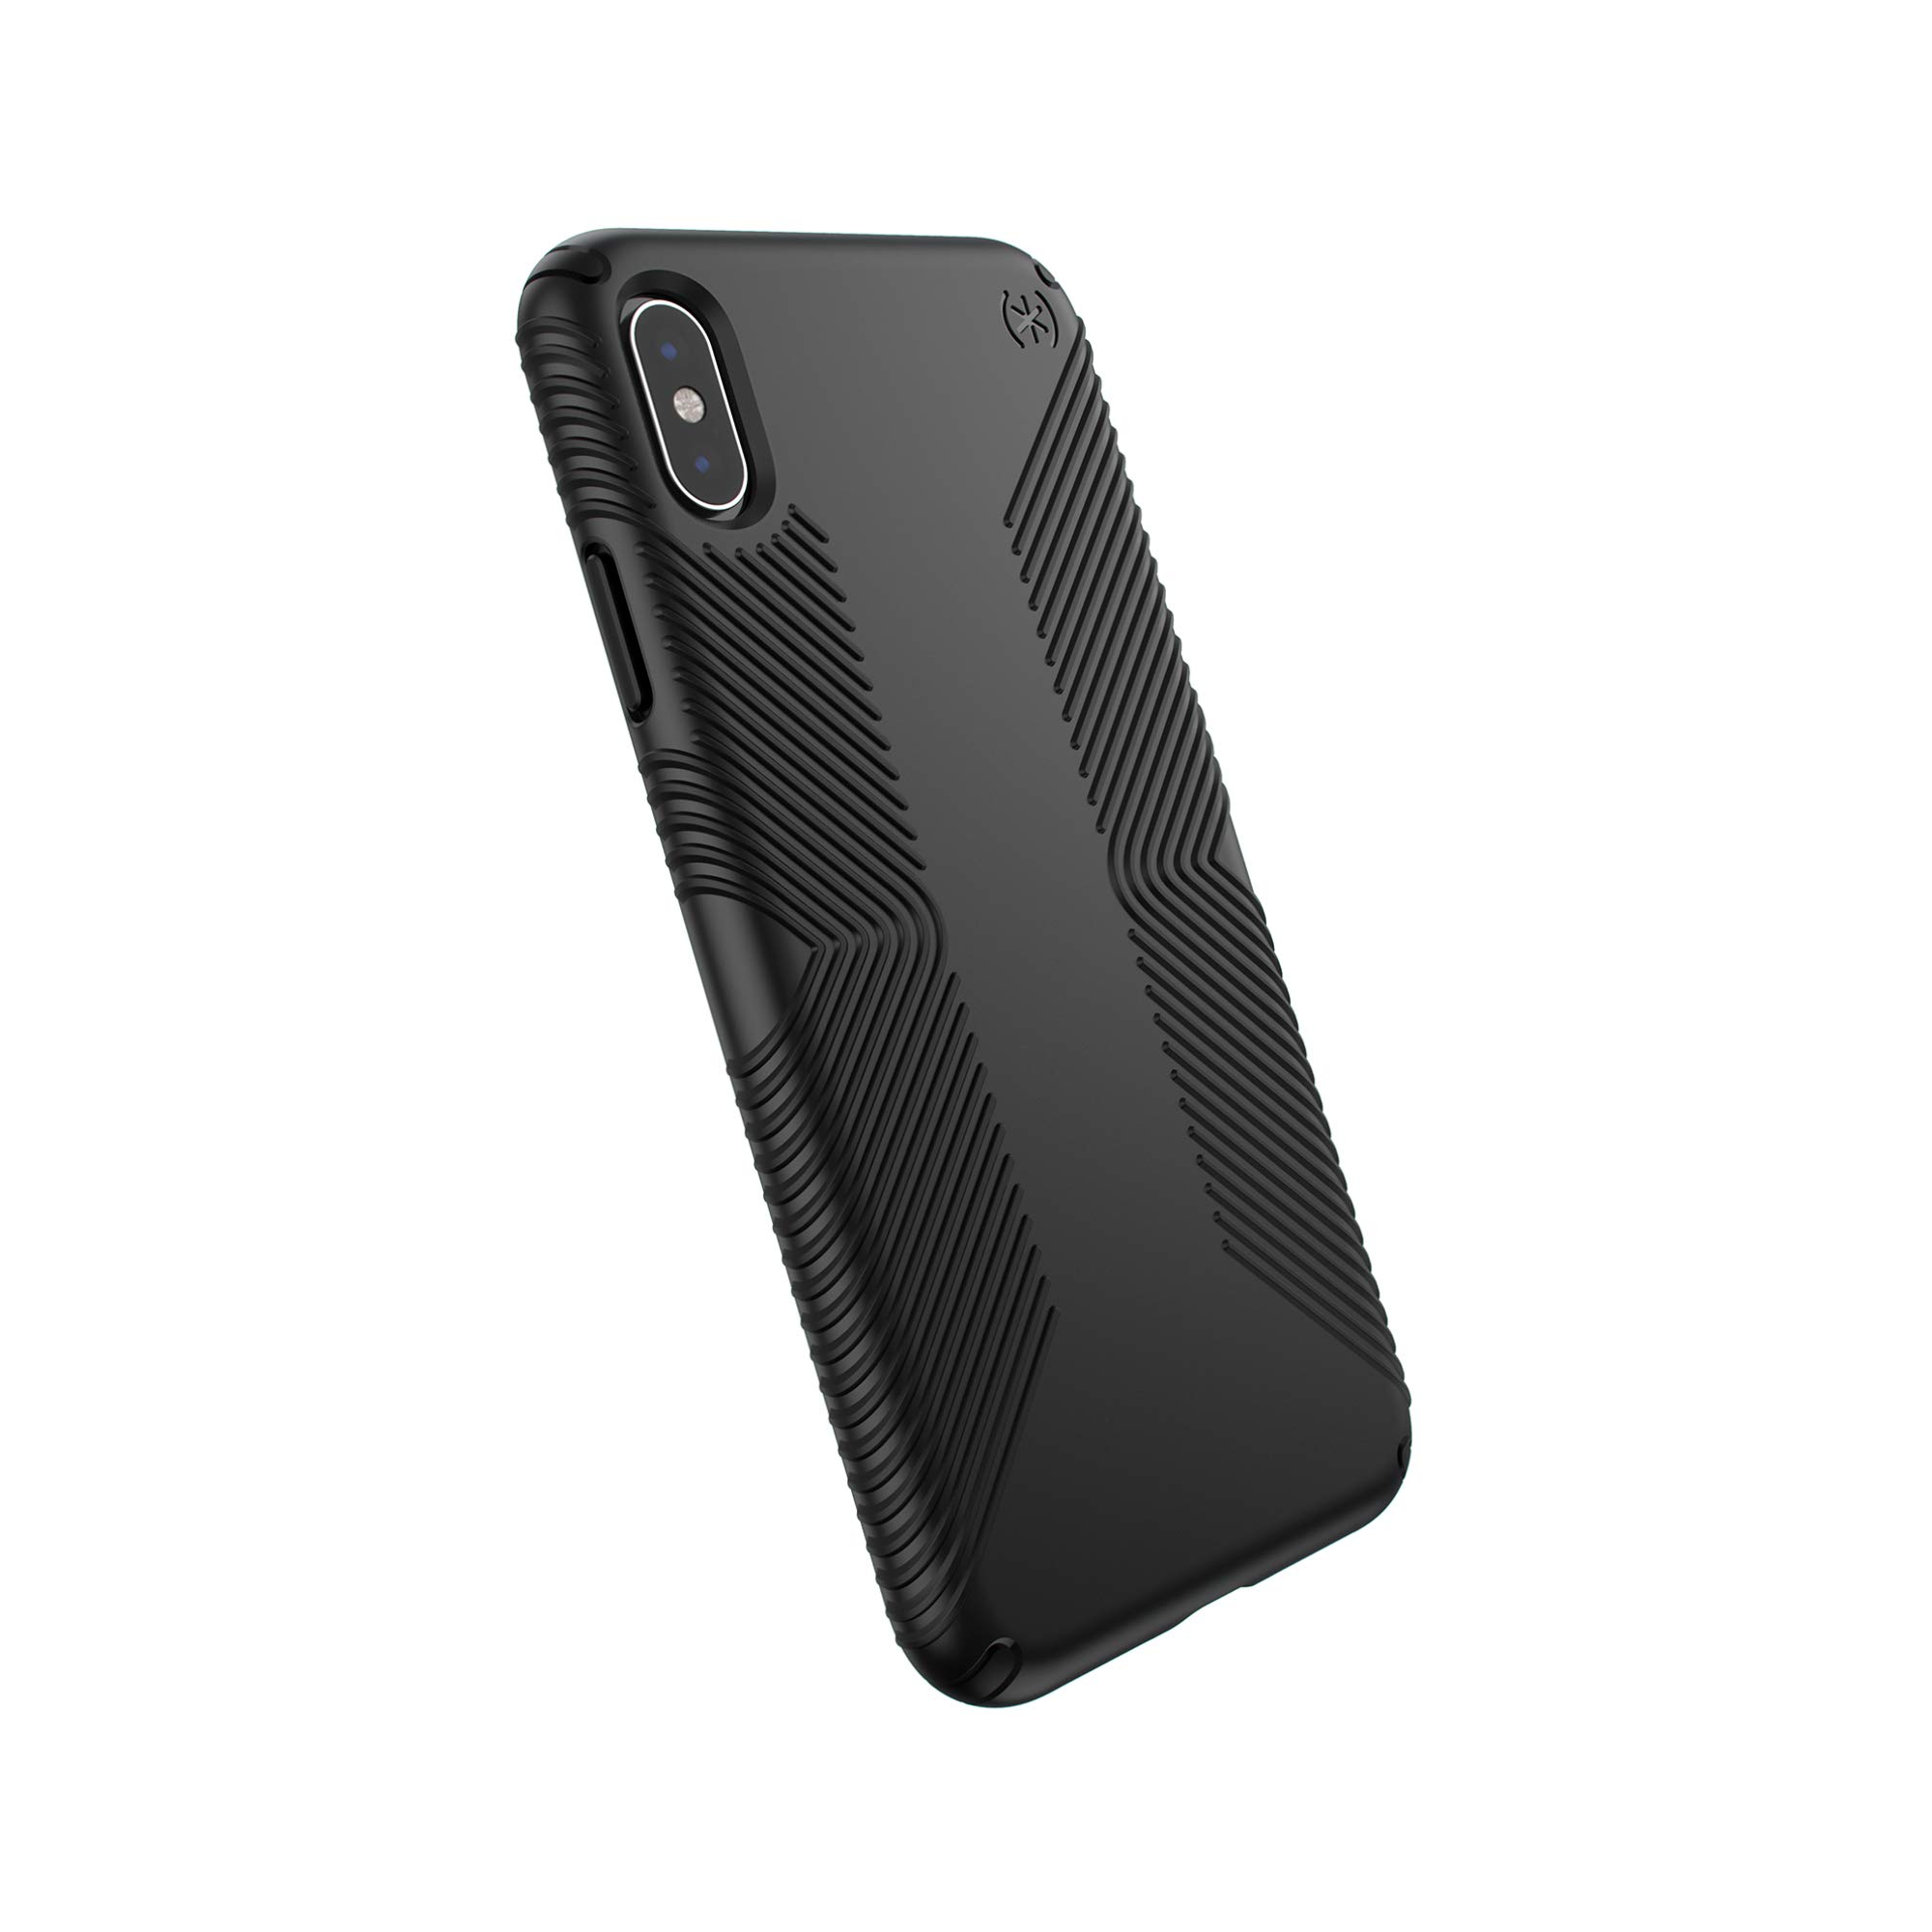 Funda para Iphone Xs Max SPECK (7GJYLHML)